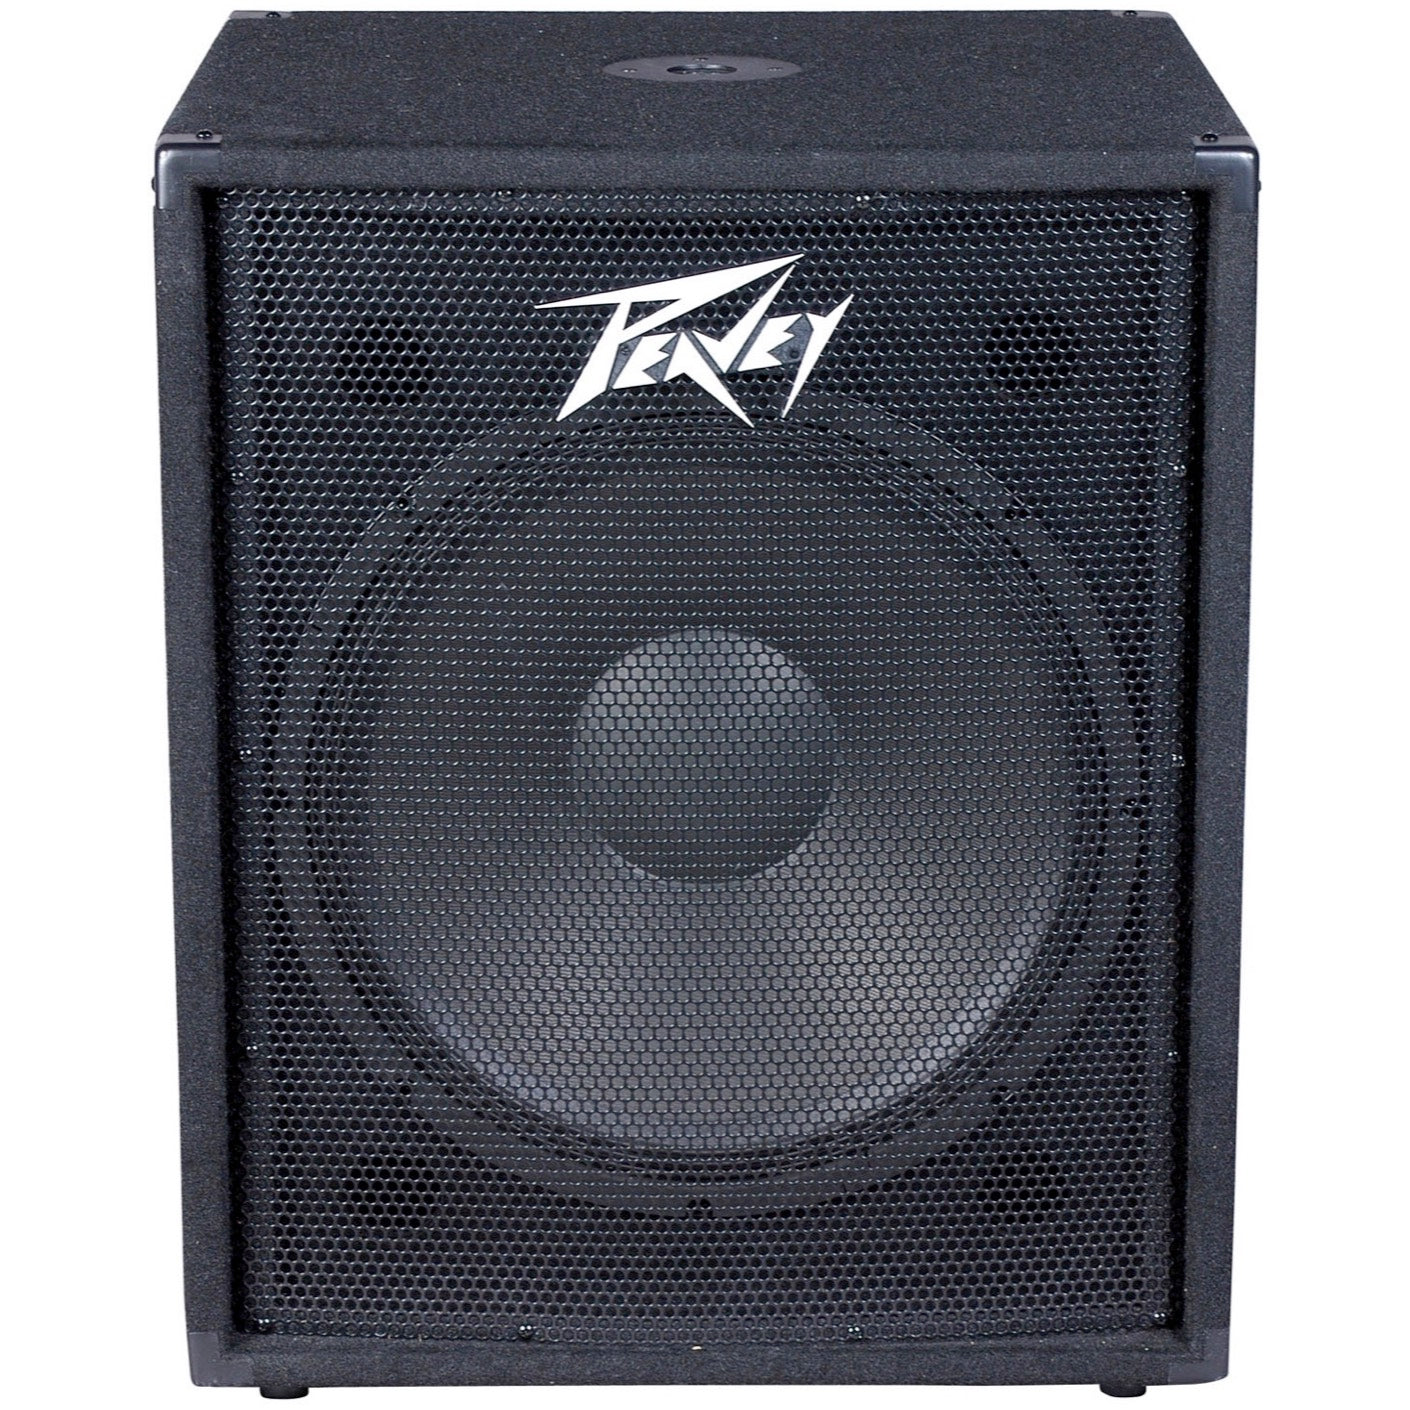 Peavey PV118D Powered Subwoofer (300 Watts, 1x18 Inch)